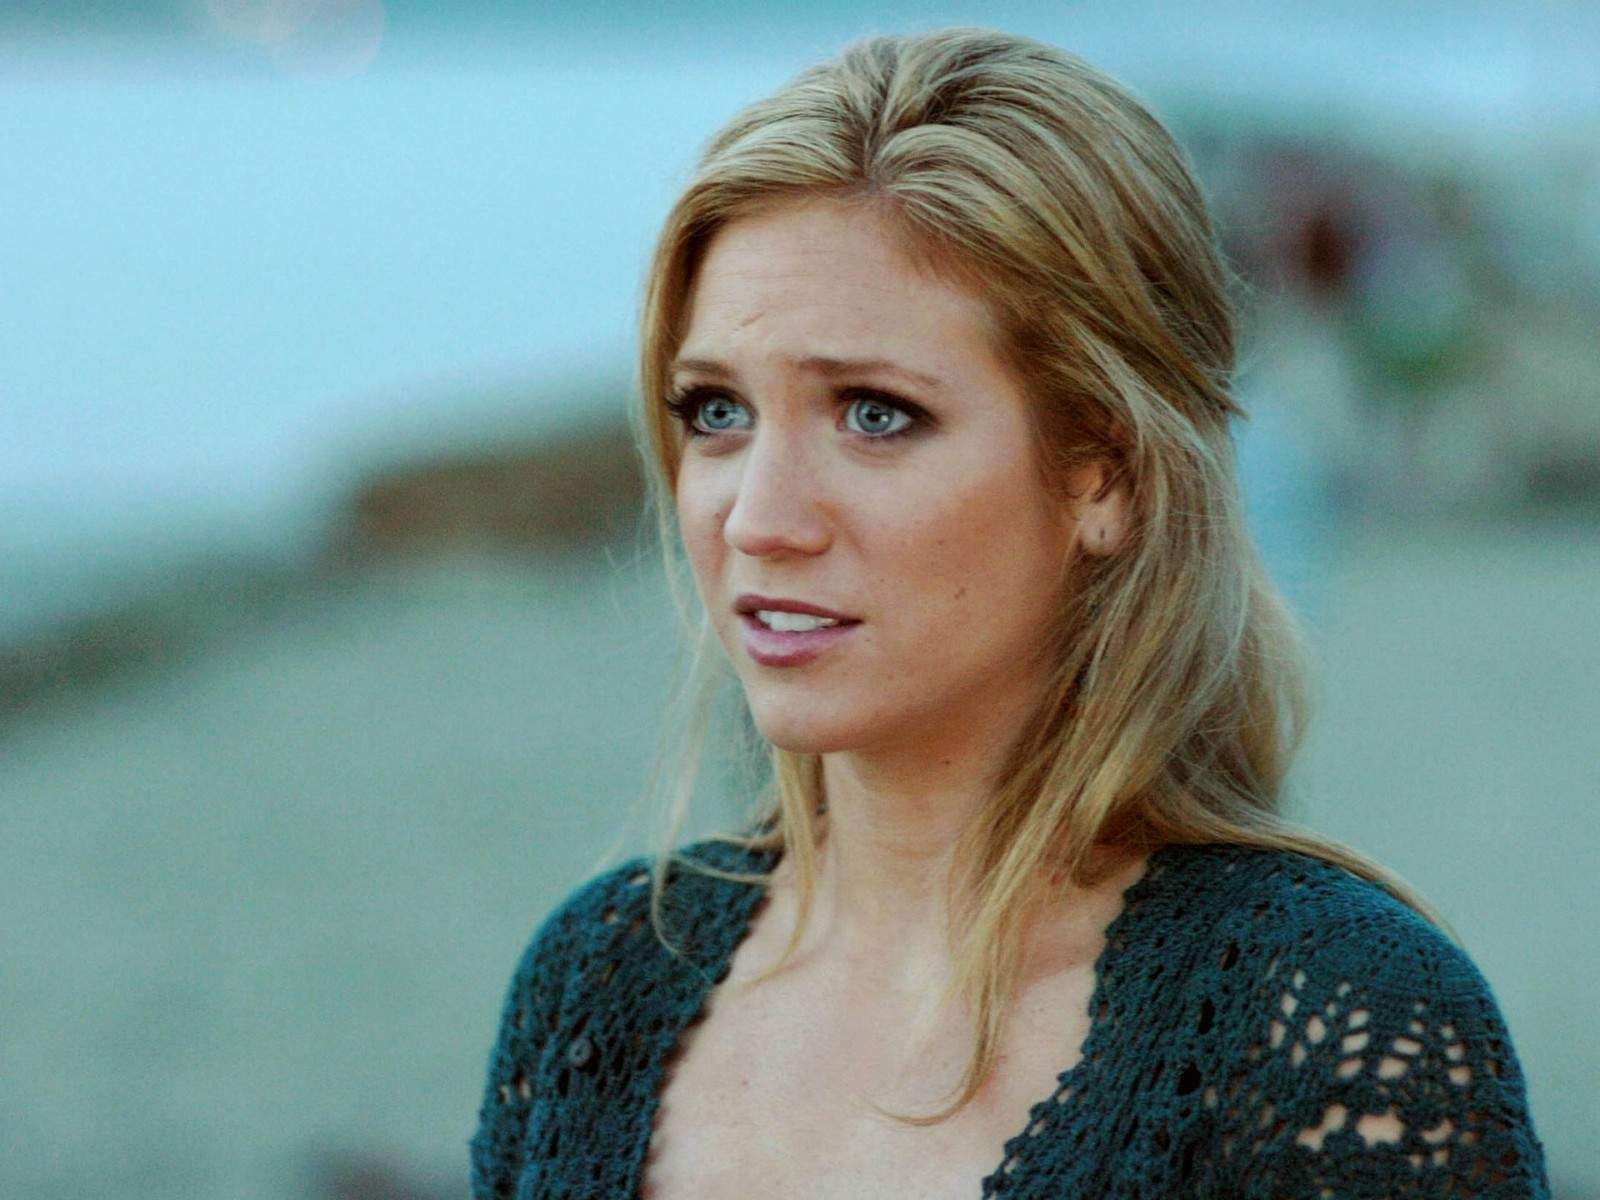 Brittany Snow widescreen wallpapers